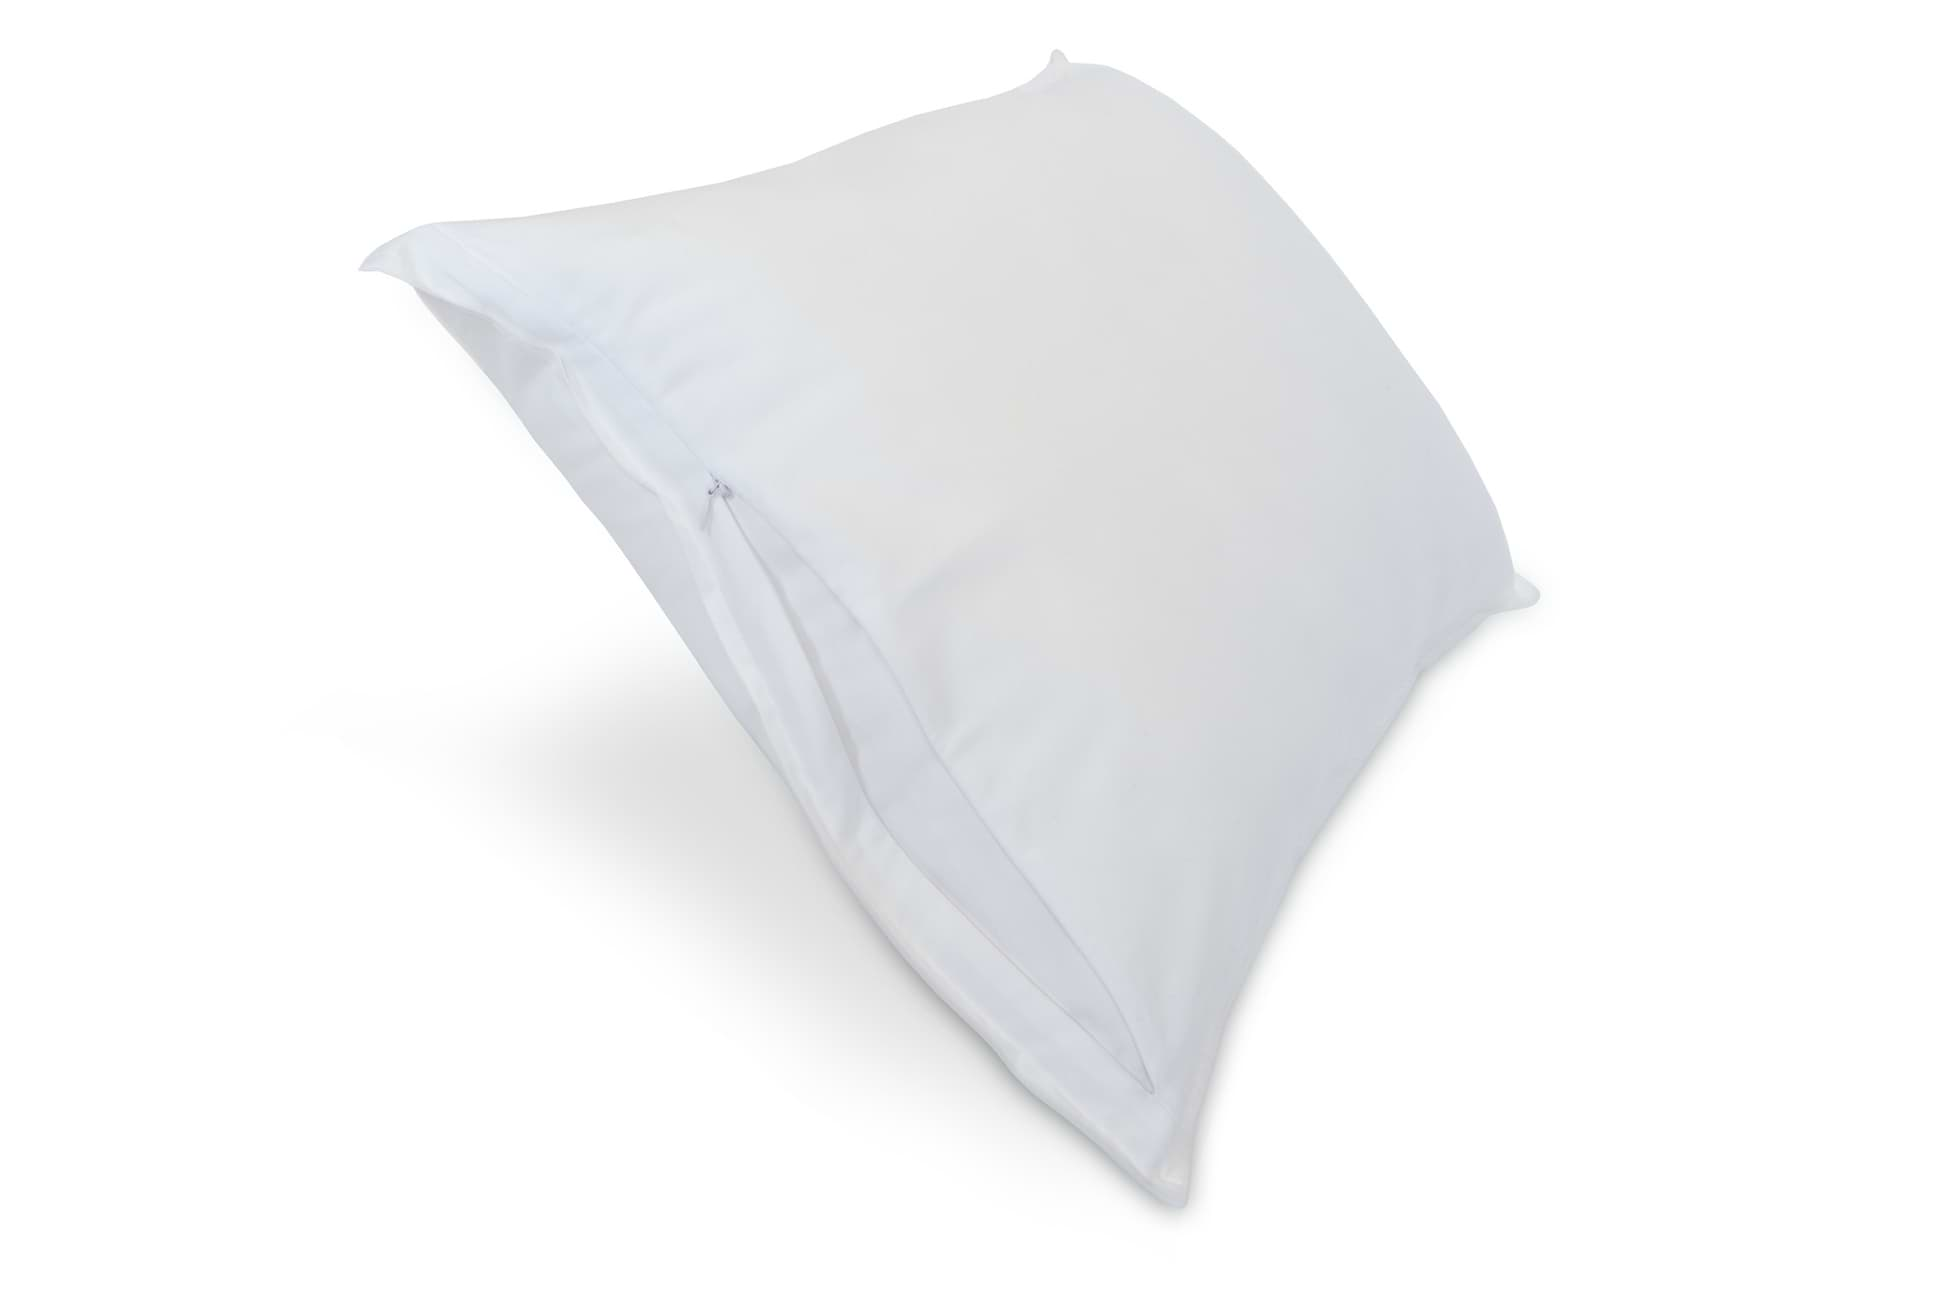 Image of Martex Purity Stay Fresh Pillow